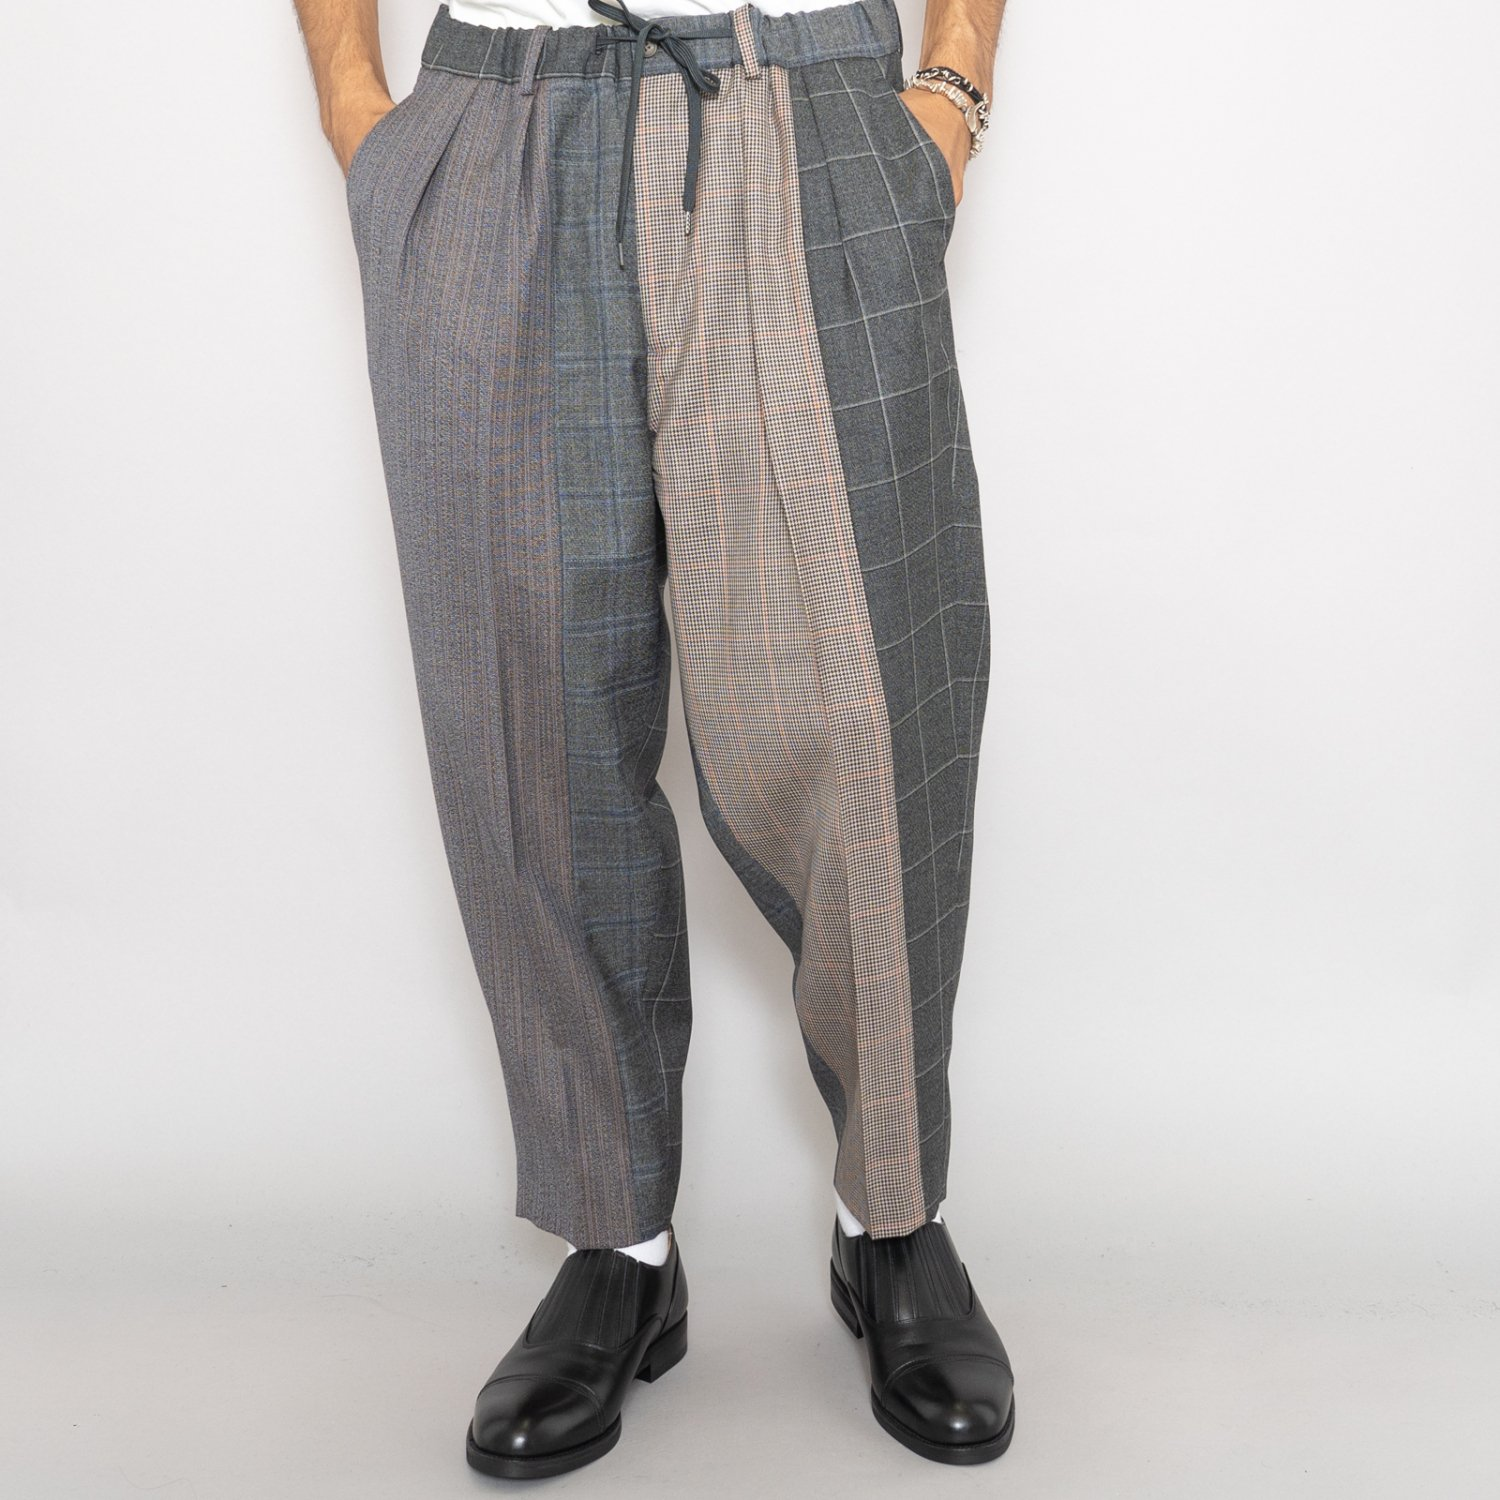 RICHFIELD * Multi Wool Wide Tapered Trousers * Multi Gray